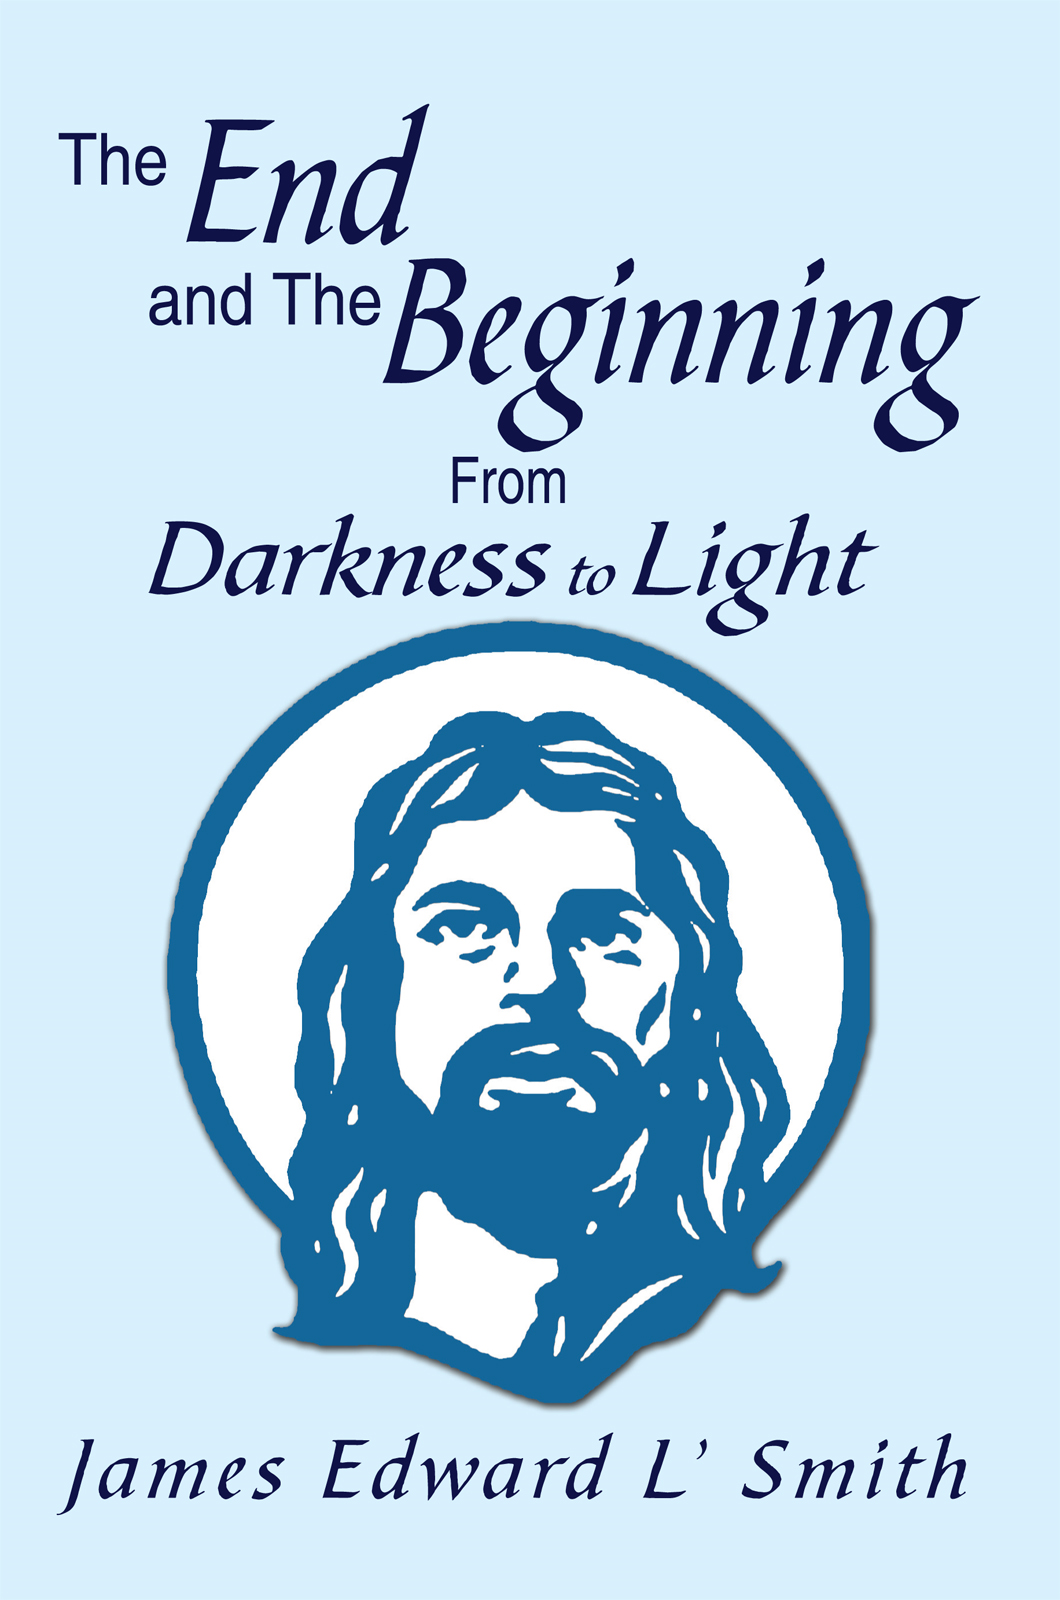 The End and The Beginning: From Darkness to Light